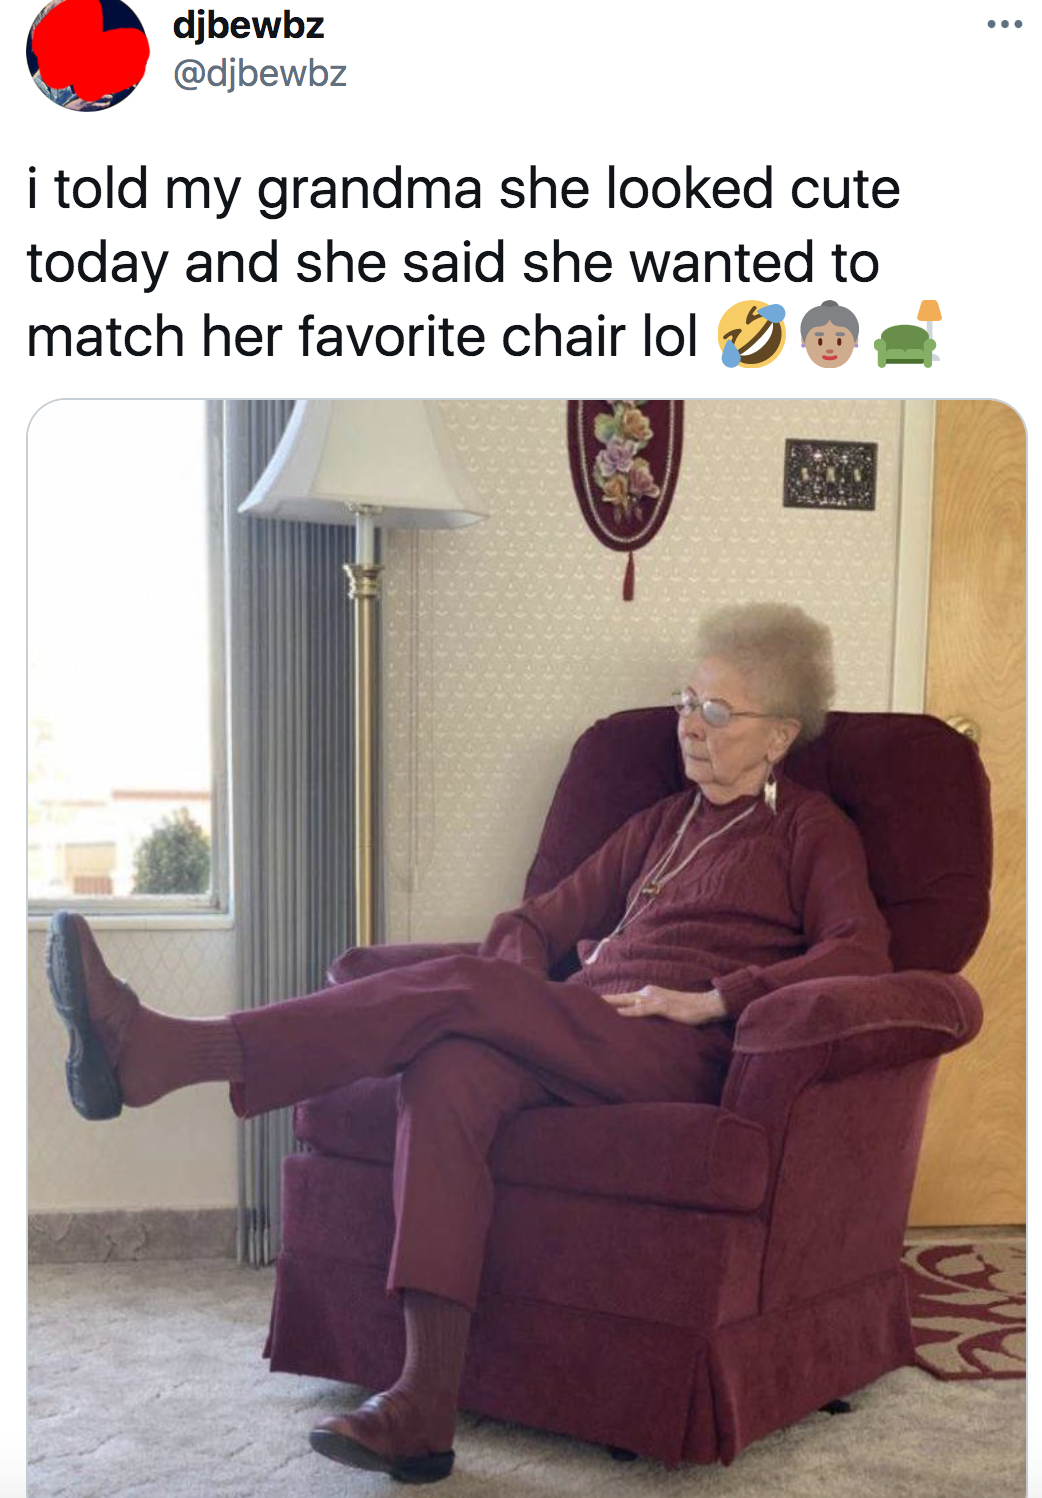 tweet of a grandma who wanted to match her couch so she wore a similar colored outfit